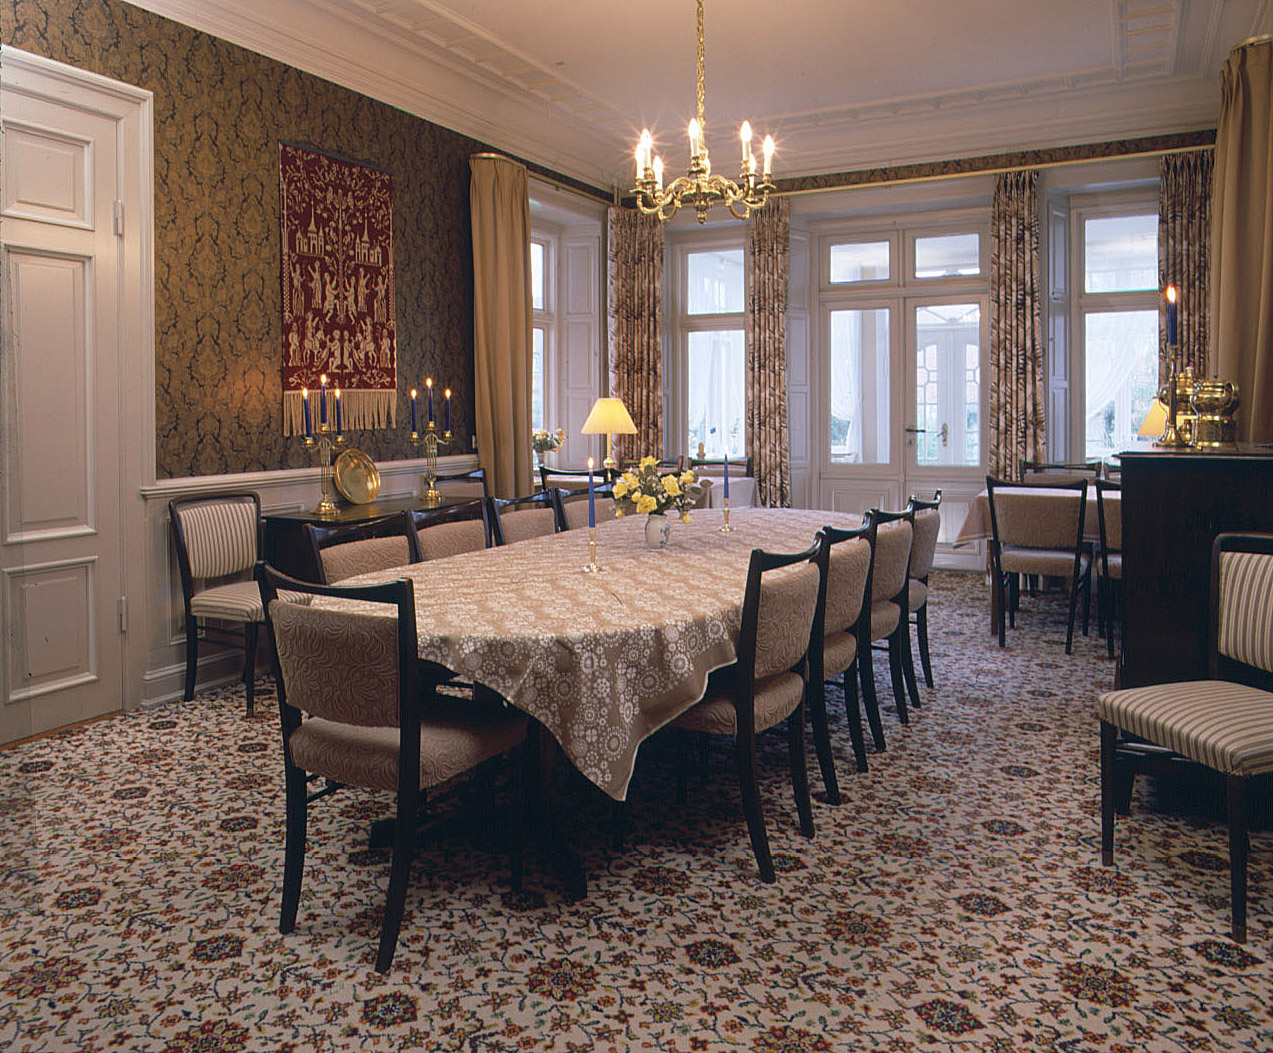 Big dining room at hotel Krogen